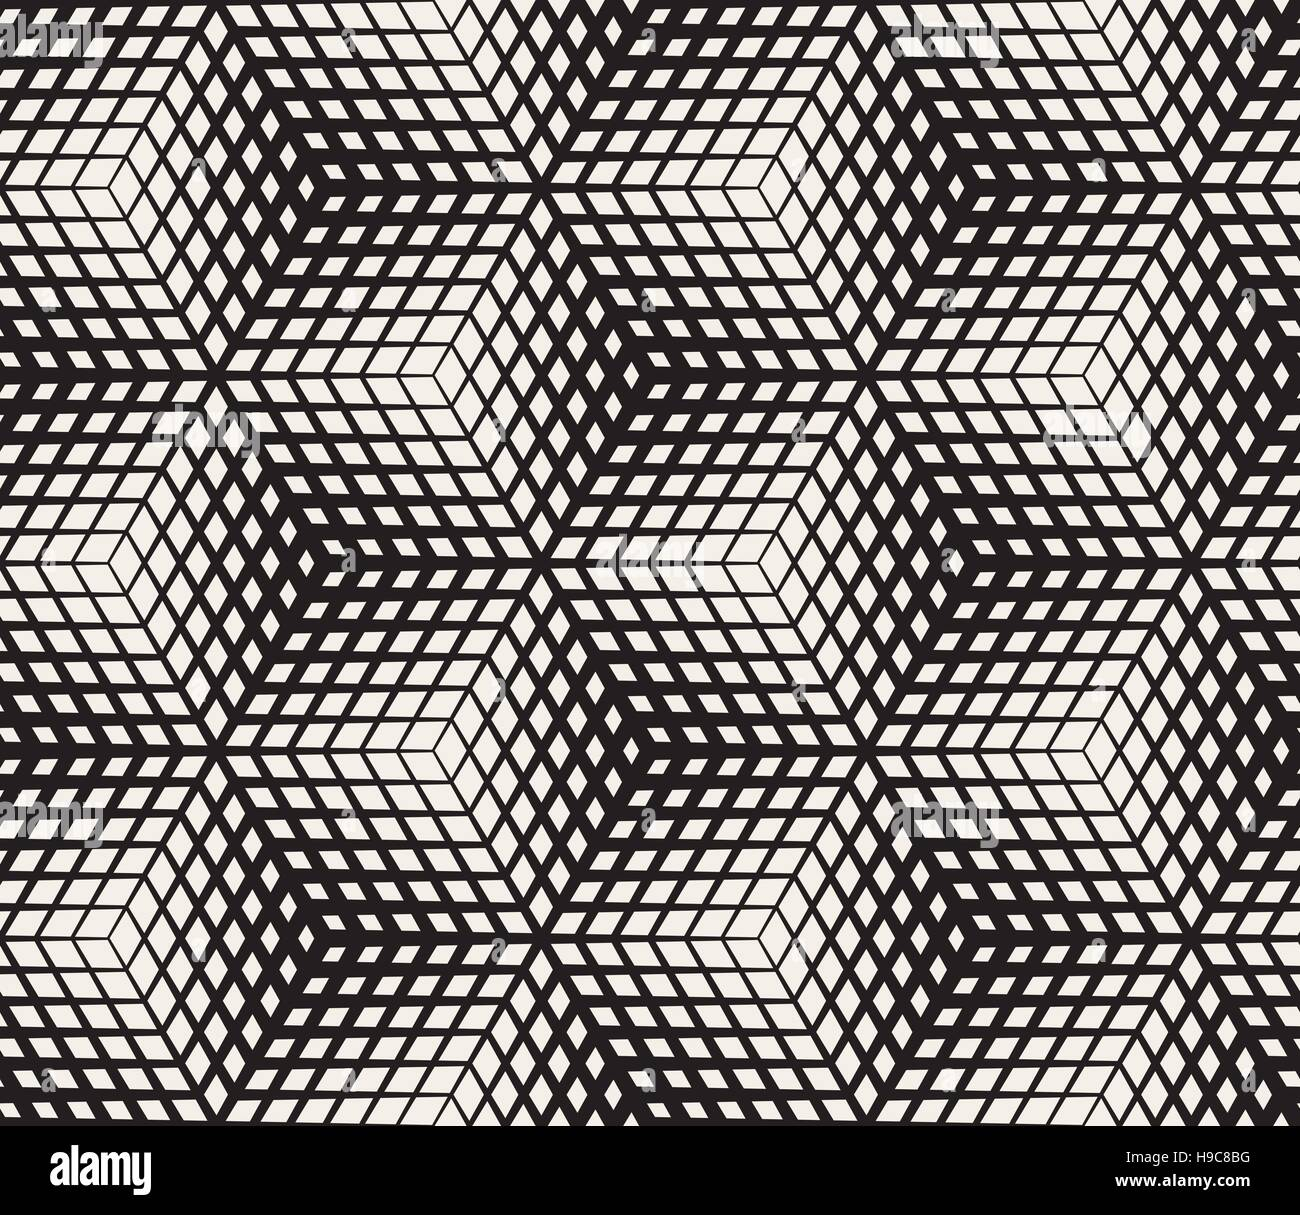 Vector Seamless Black And White Halftone Geometric Cubes Pattern - Stock Image